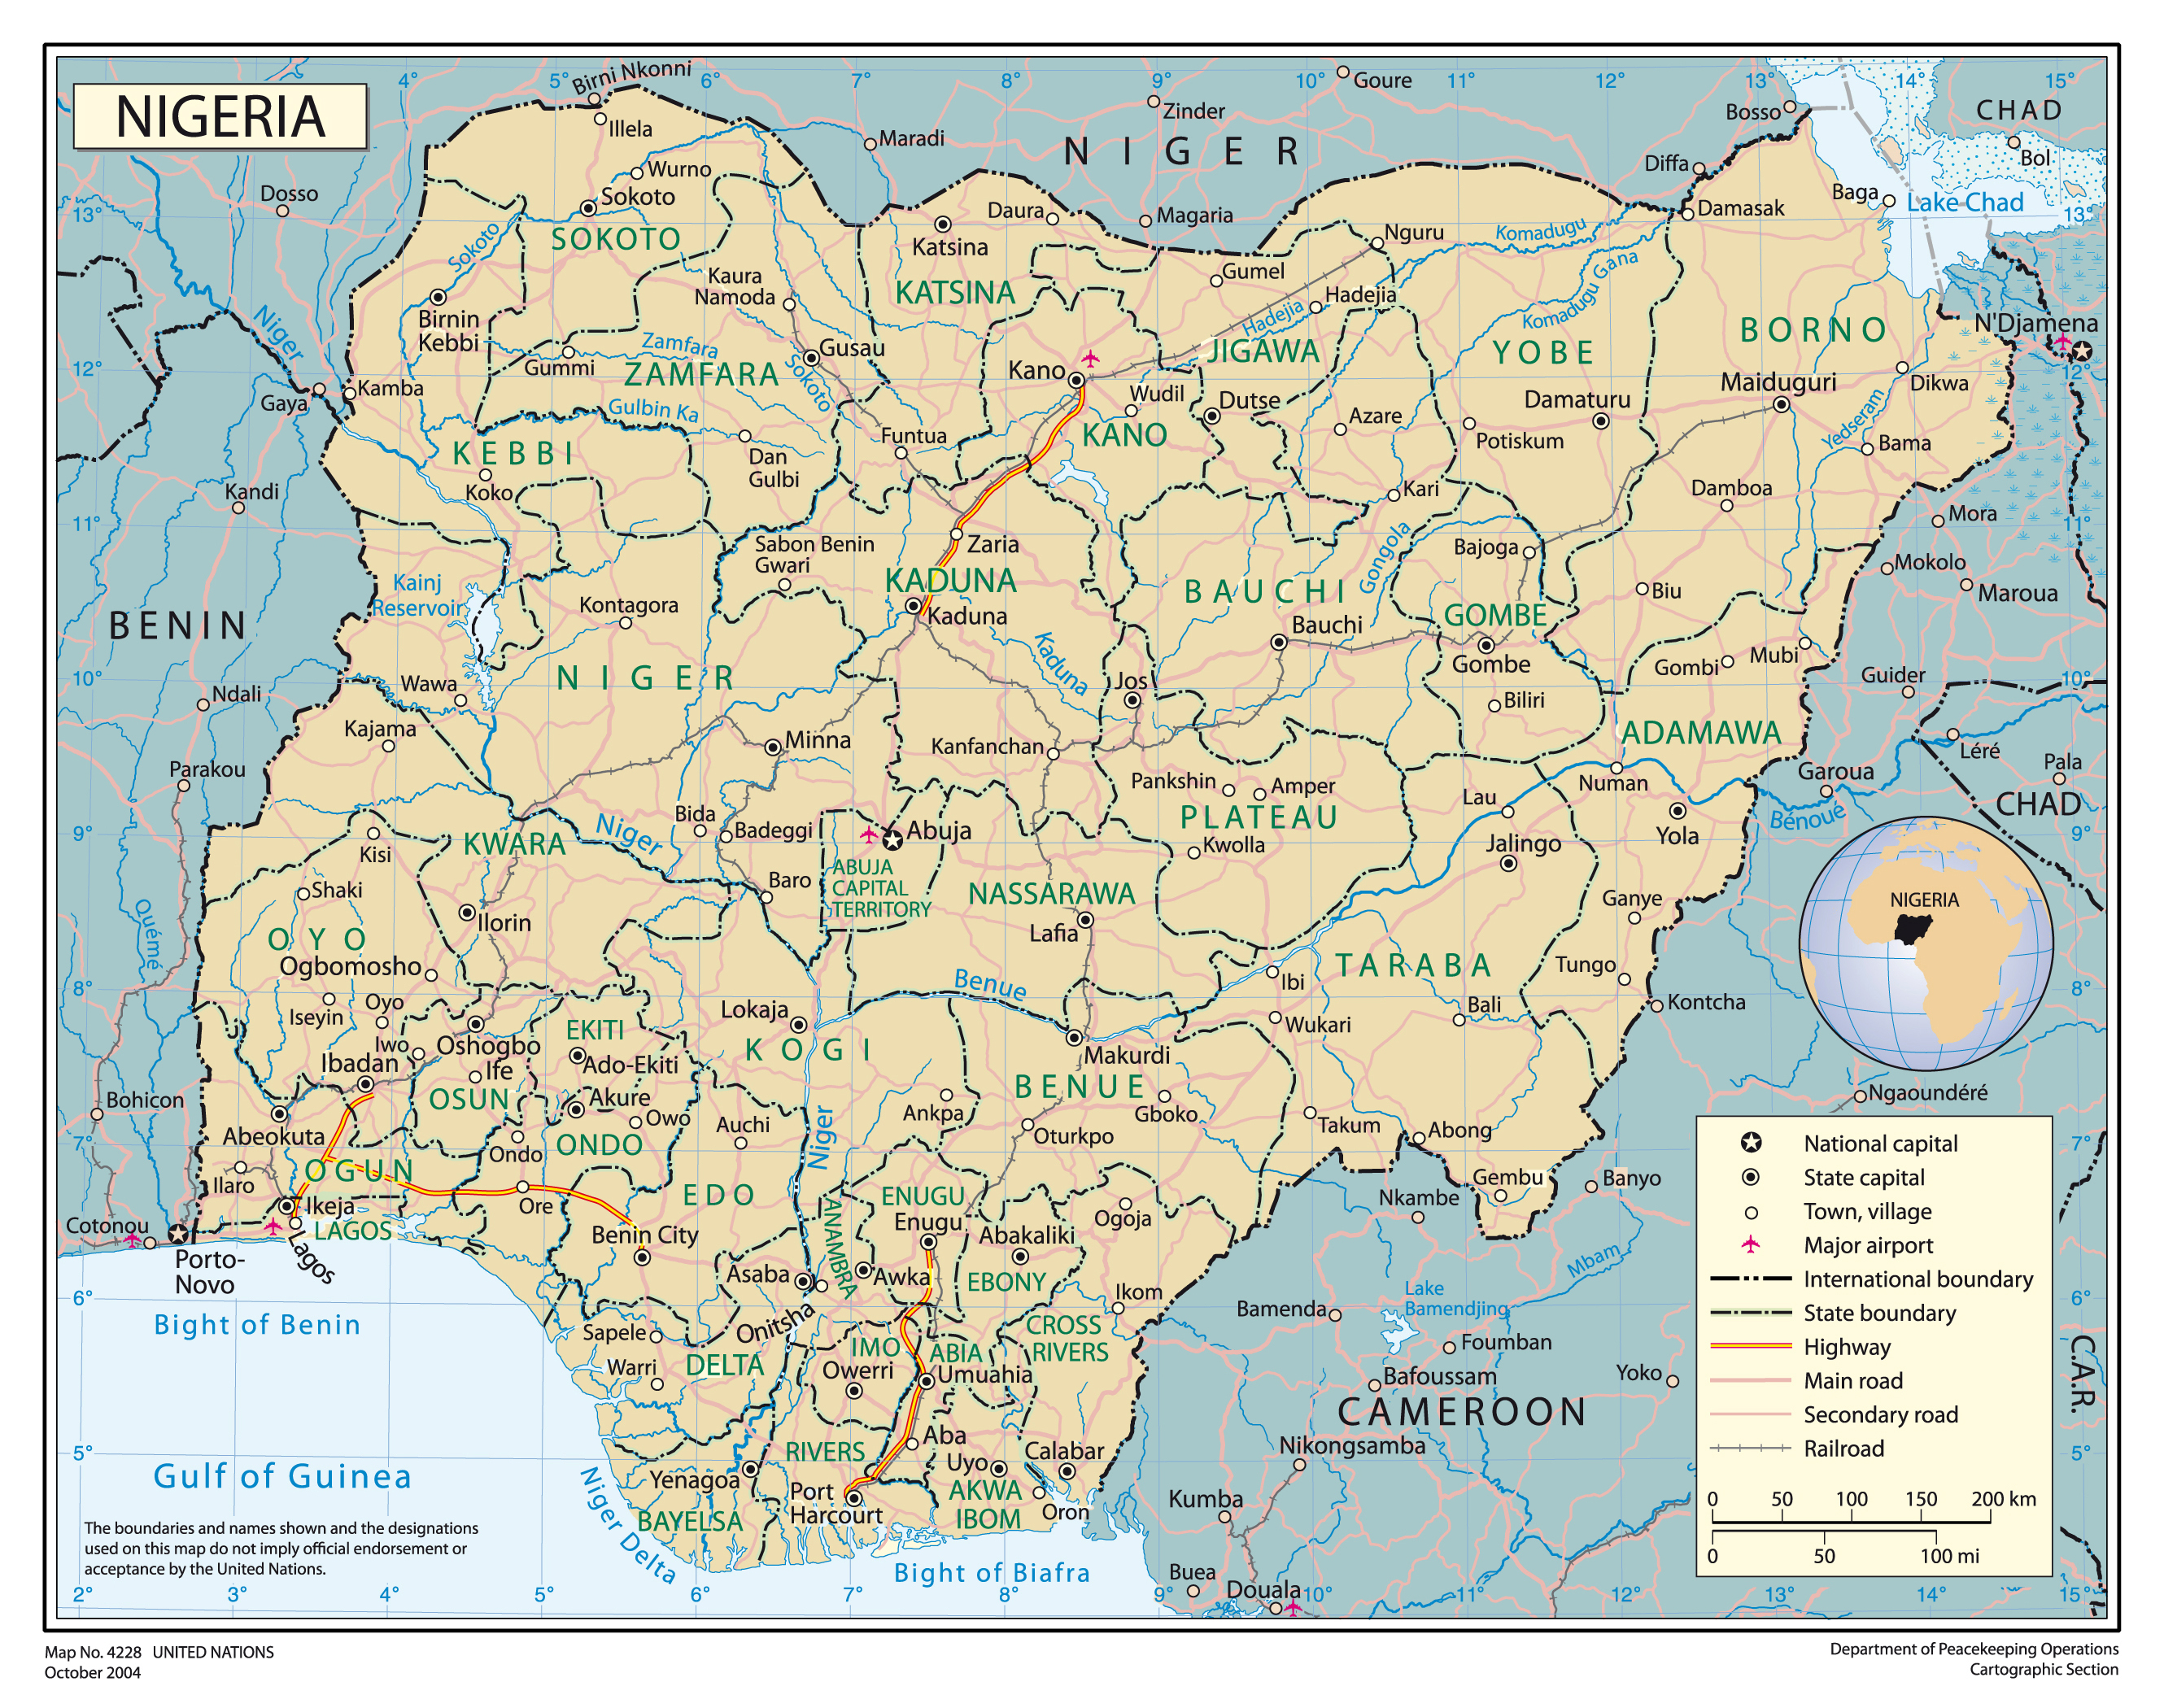 Full political map of Nigeria Nigeria full political map Vidiani